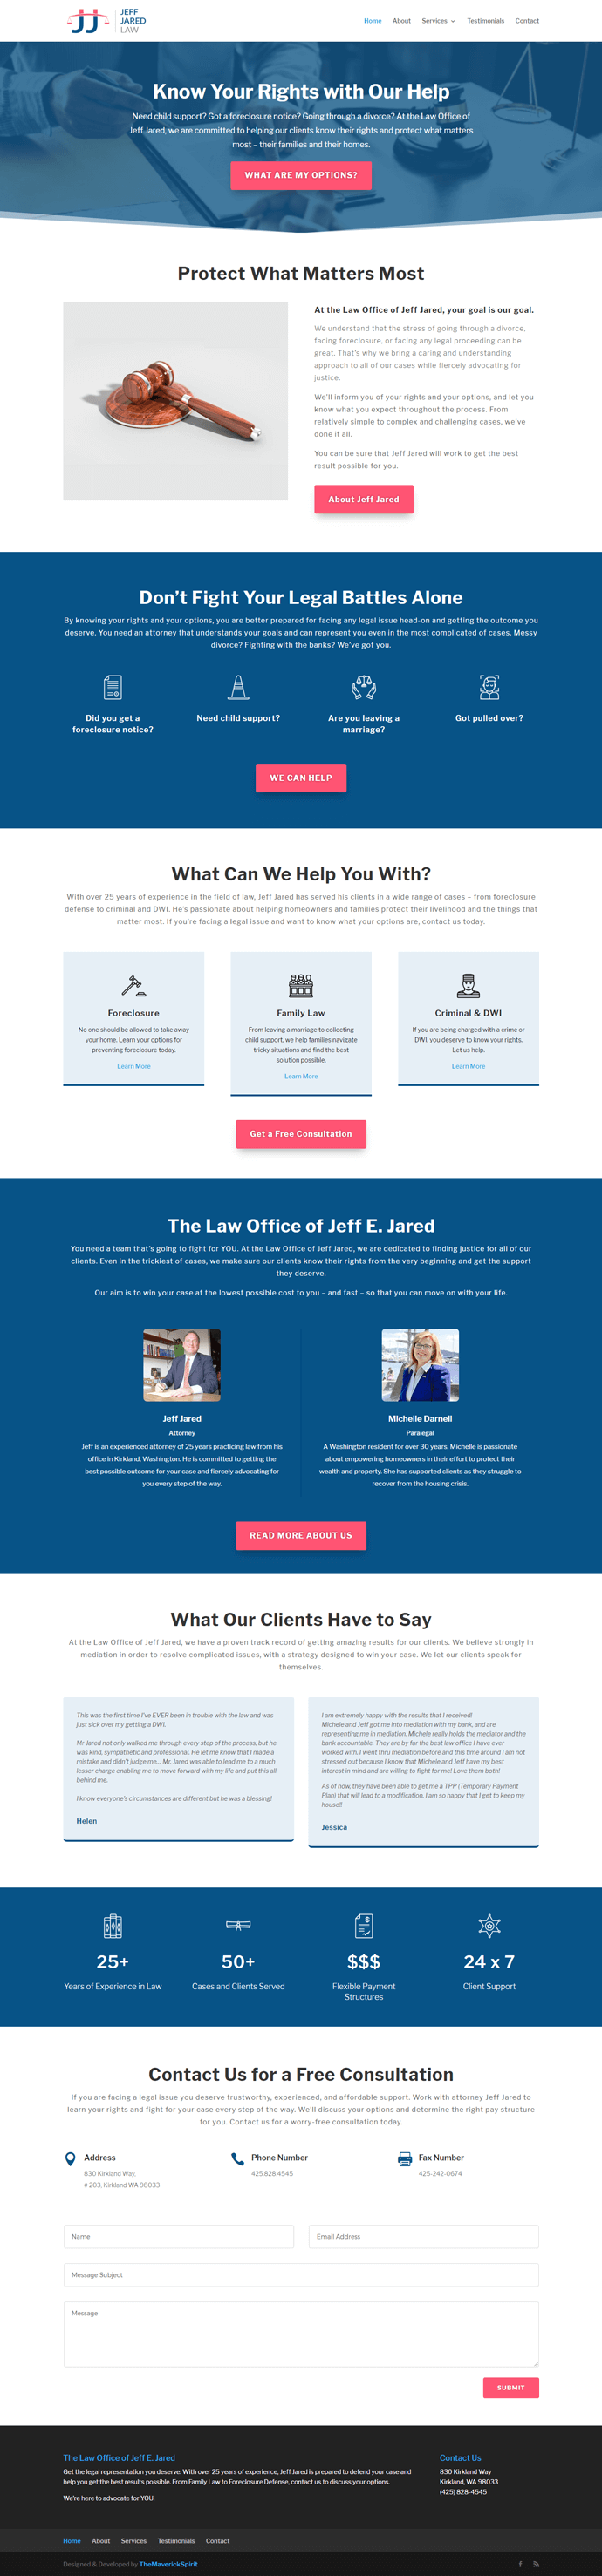 jeffjaredlaw-kirkland-law-firm-thememantis